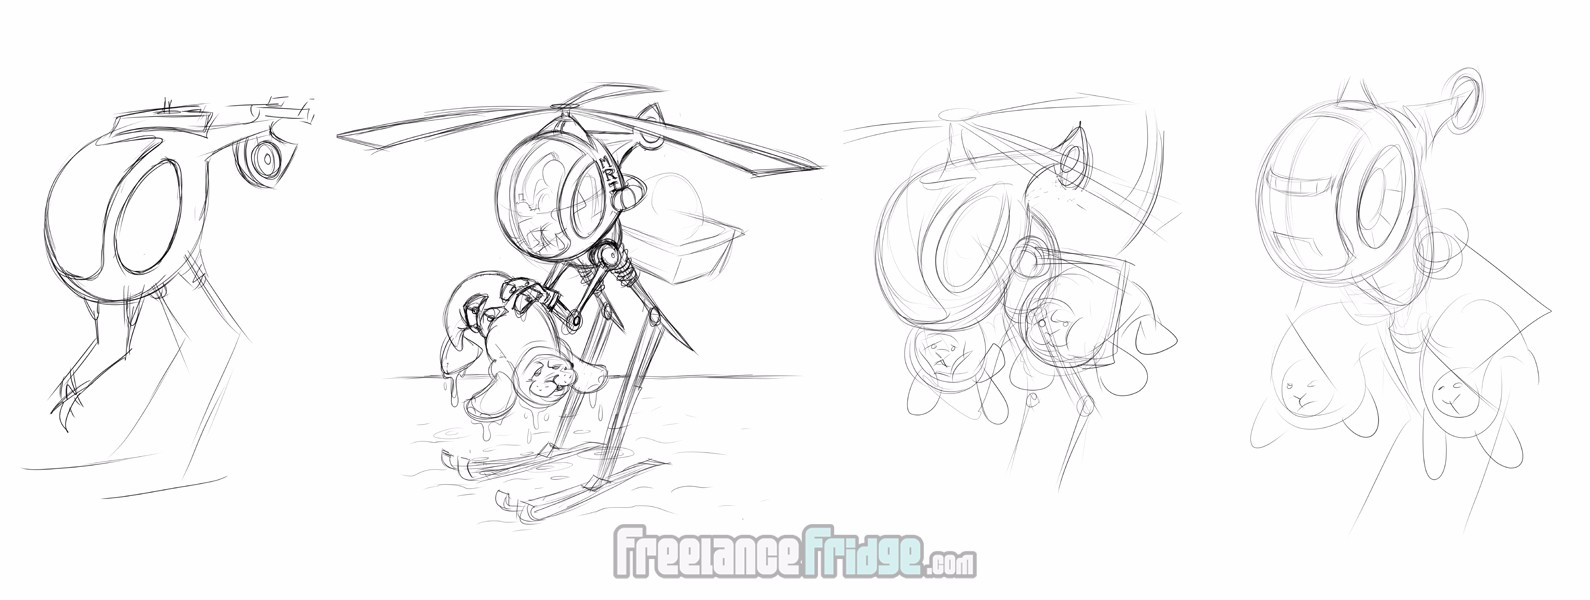 Helicopter Robot initial sketch concepts